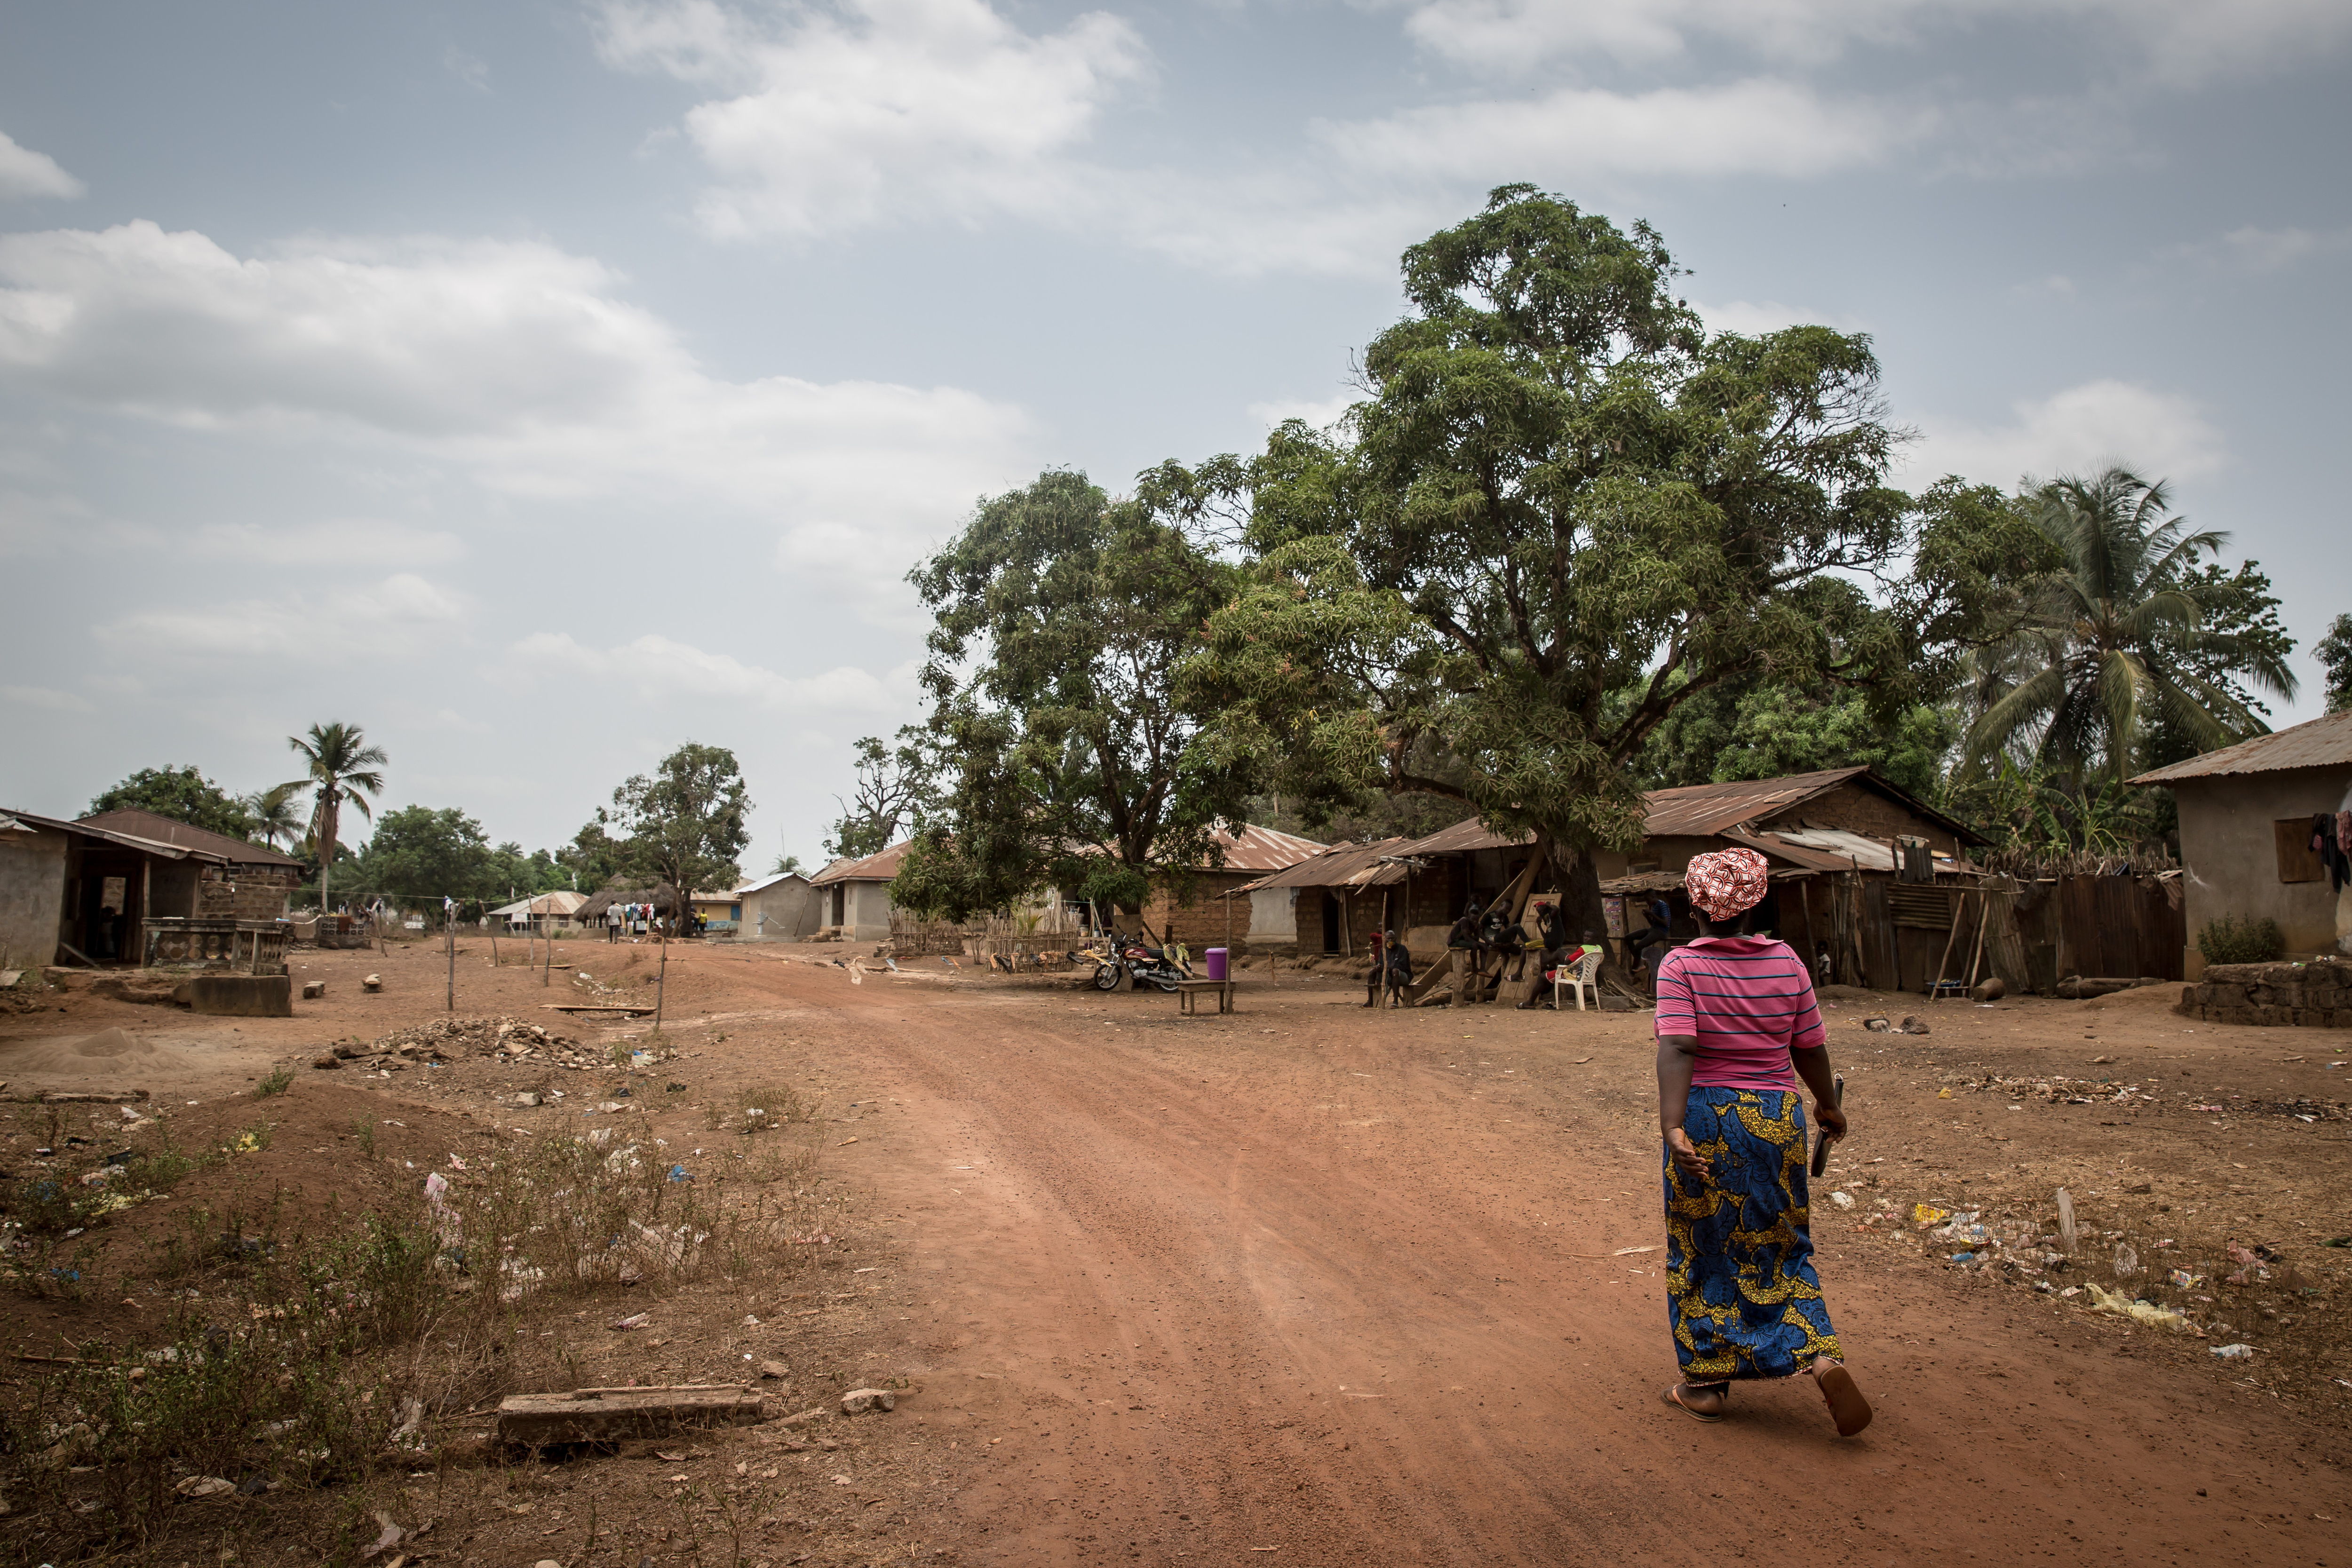 A woman approaches a community-manned checkpoint in Mafaray, Sierra Leone on April 1, 2021.